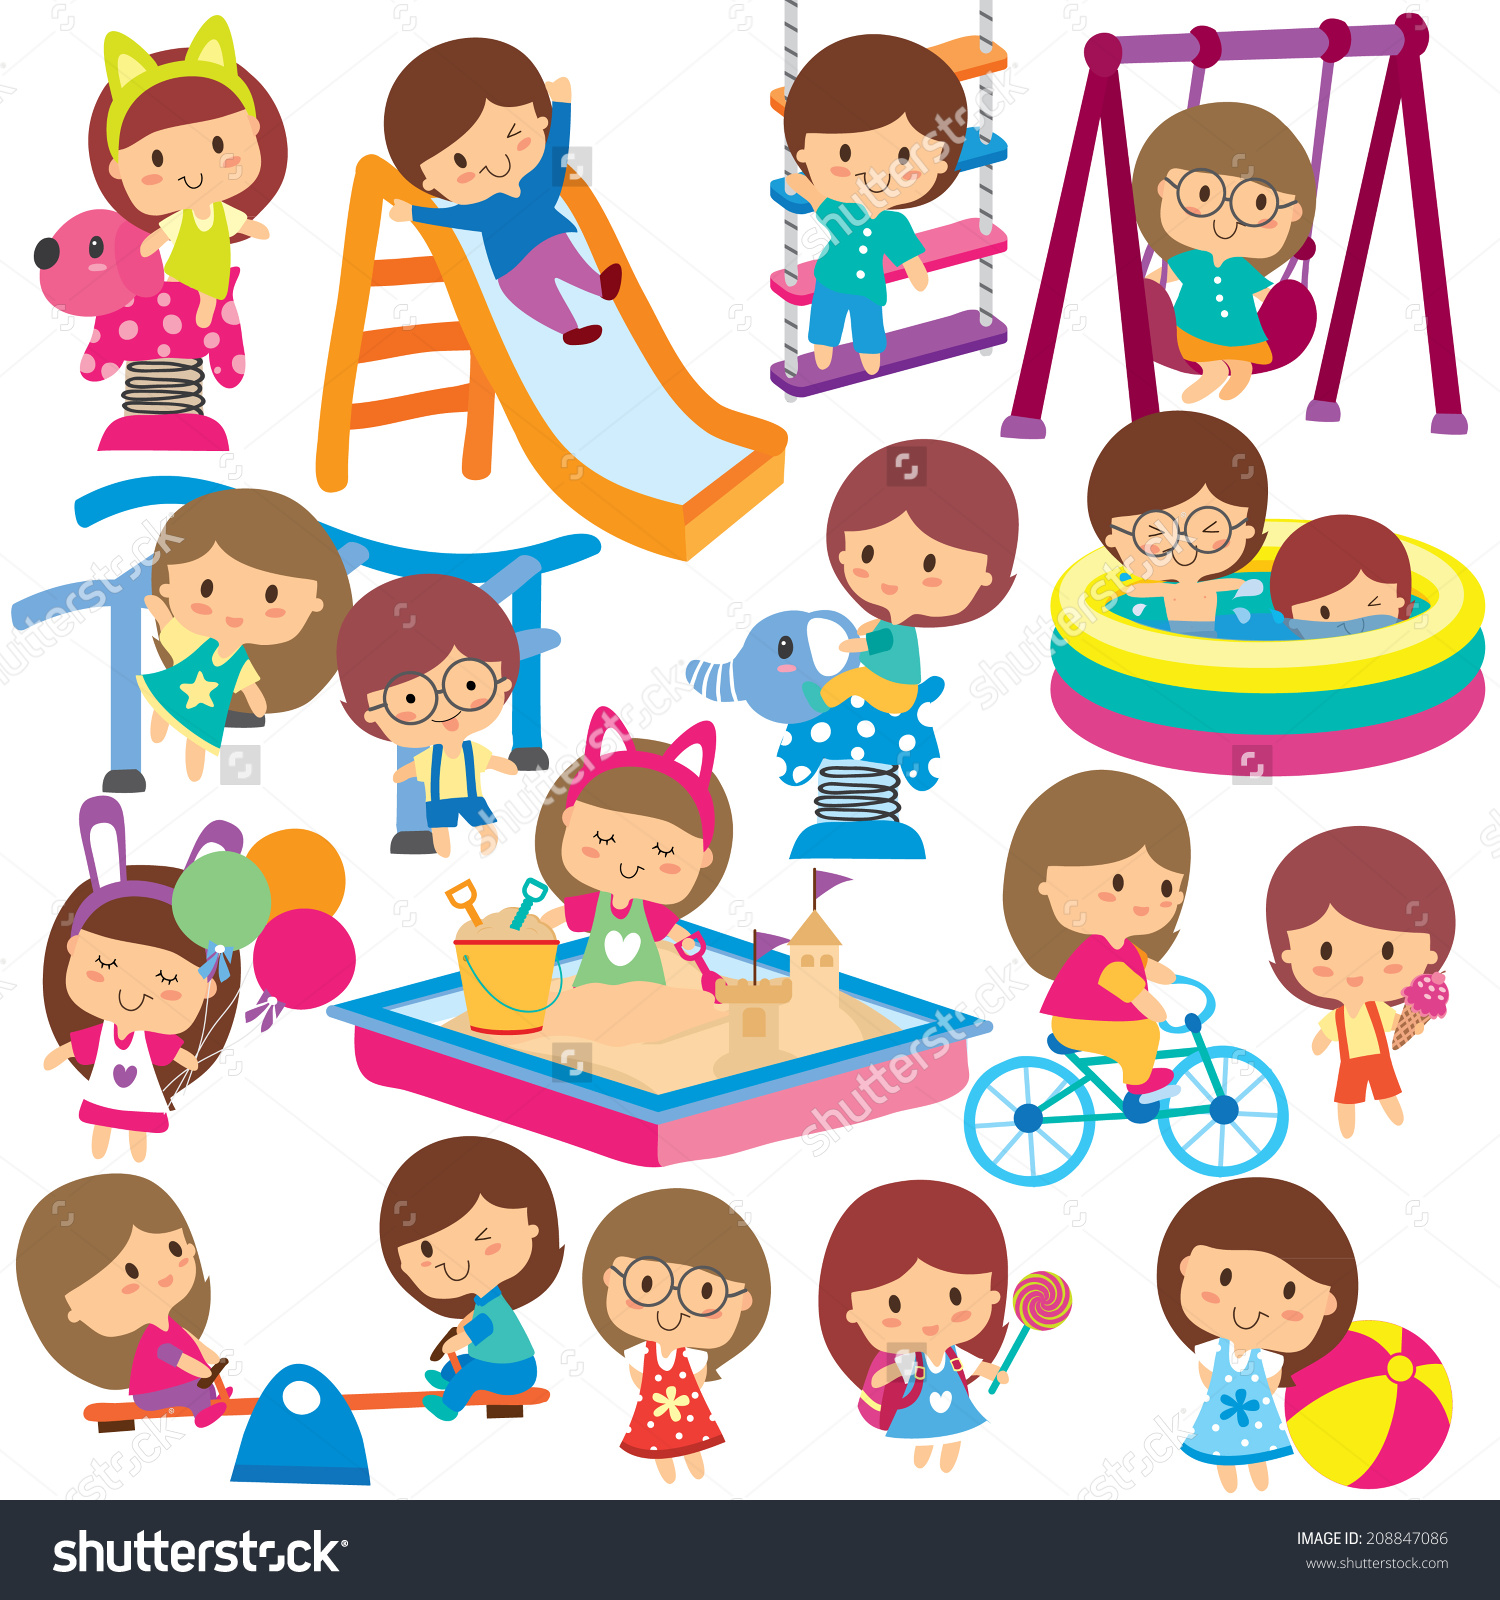 Free Outdoor Play Cliparts Download Free Clip Art Free